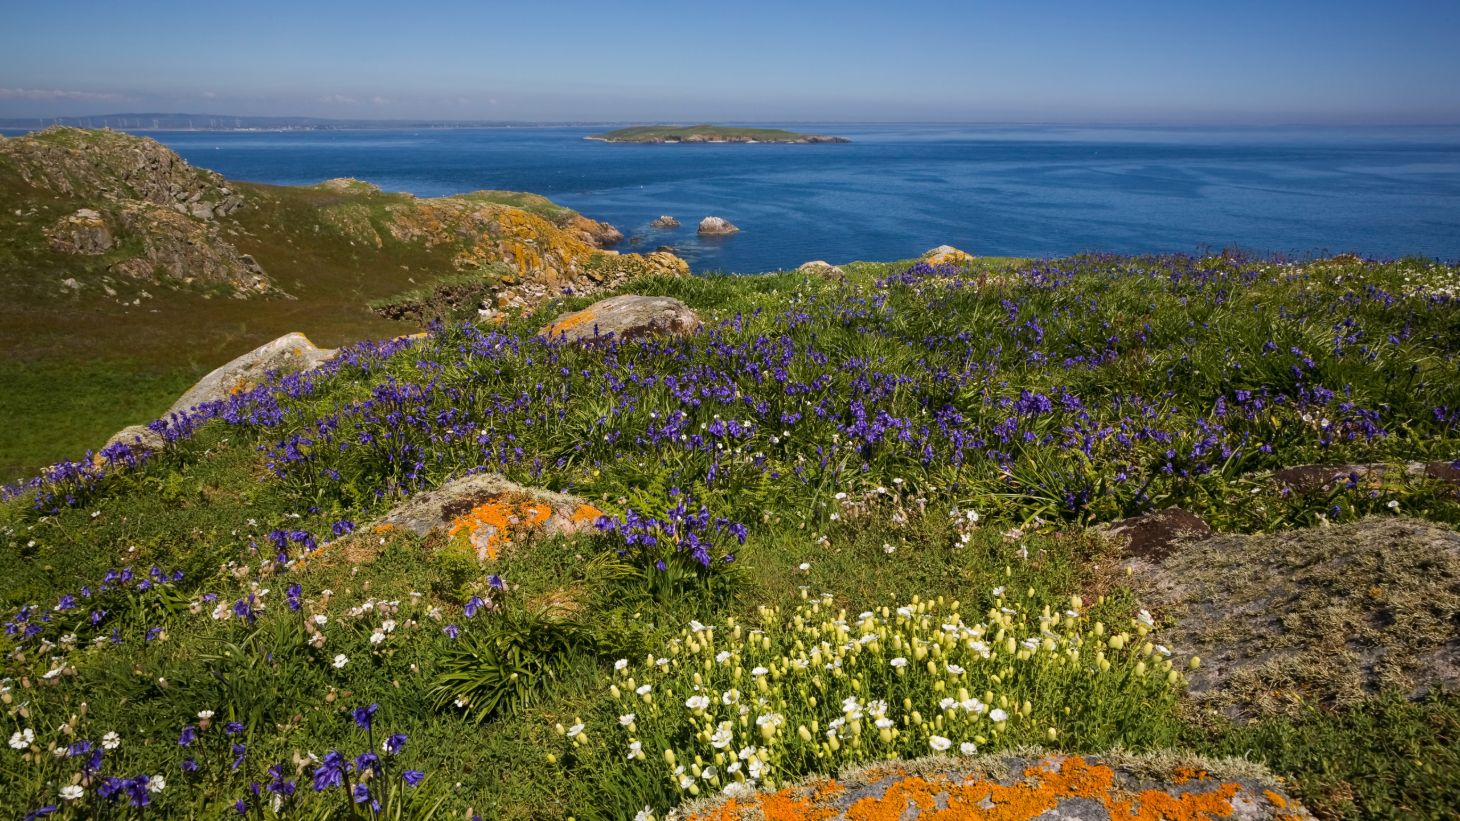 Visit Wexford and discover the coastal view of theSalteeIslands.